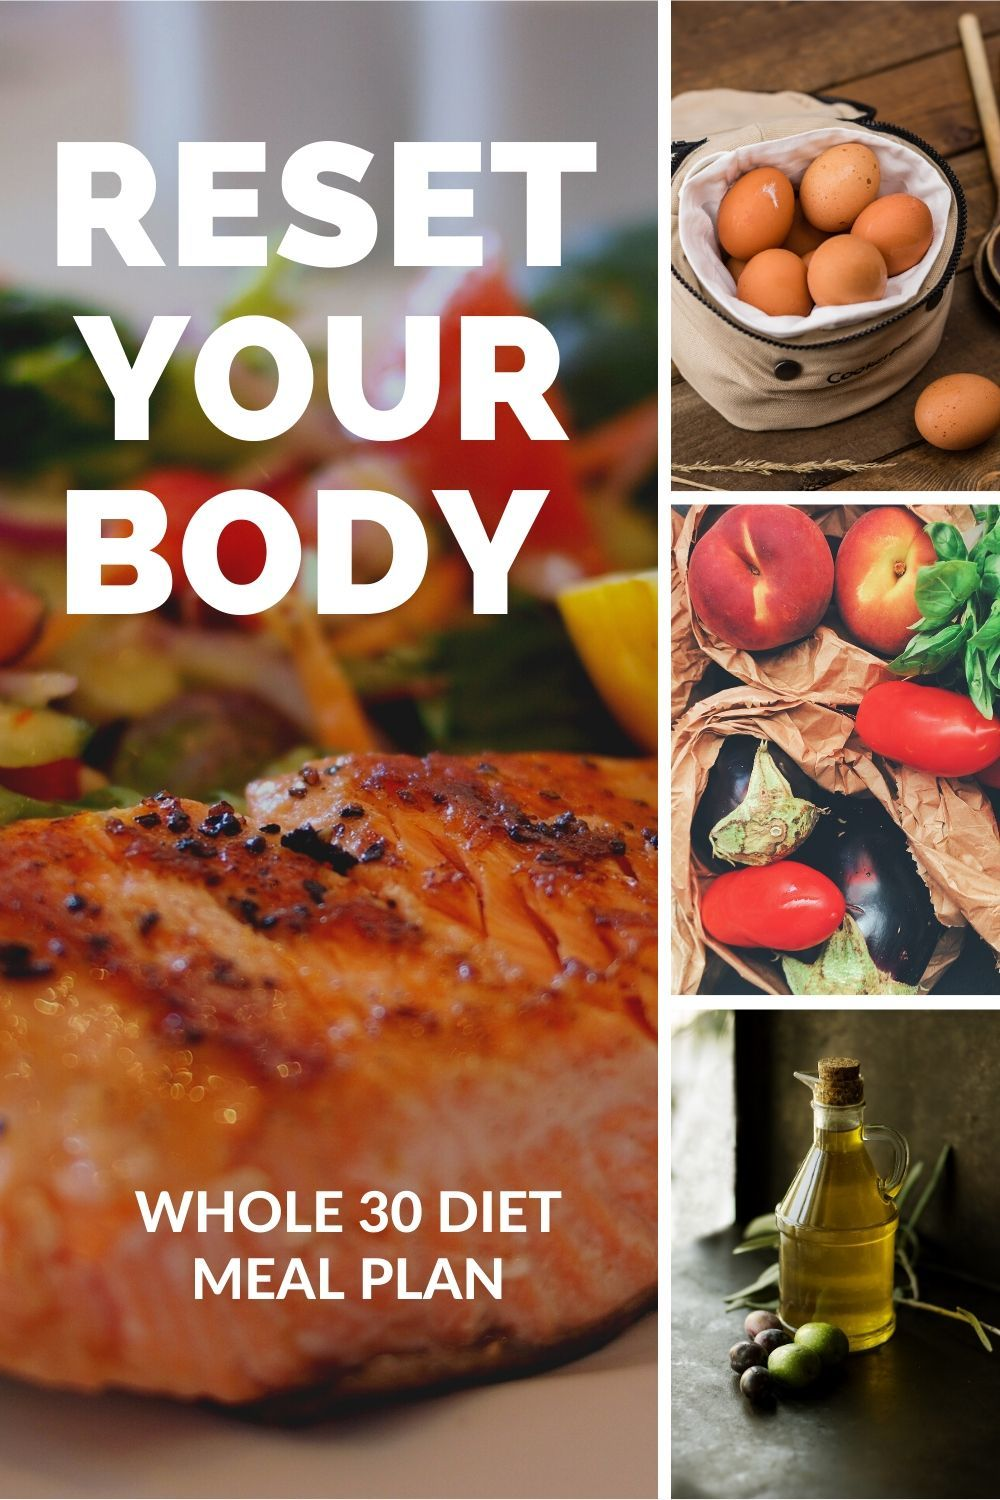 Reset Your Body With The Whole 30 Diet Meal Plan